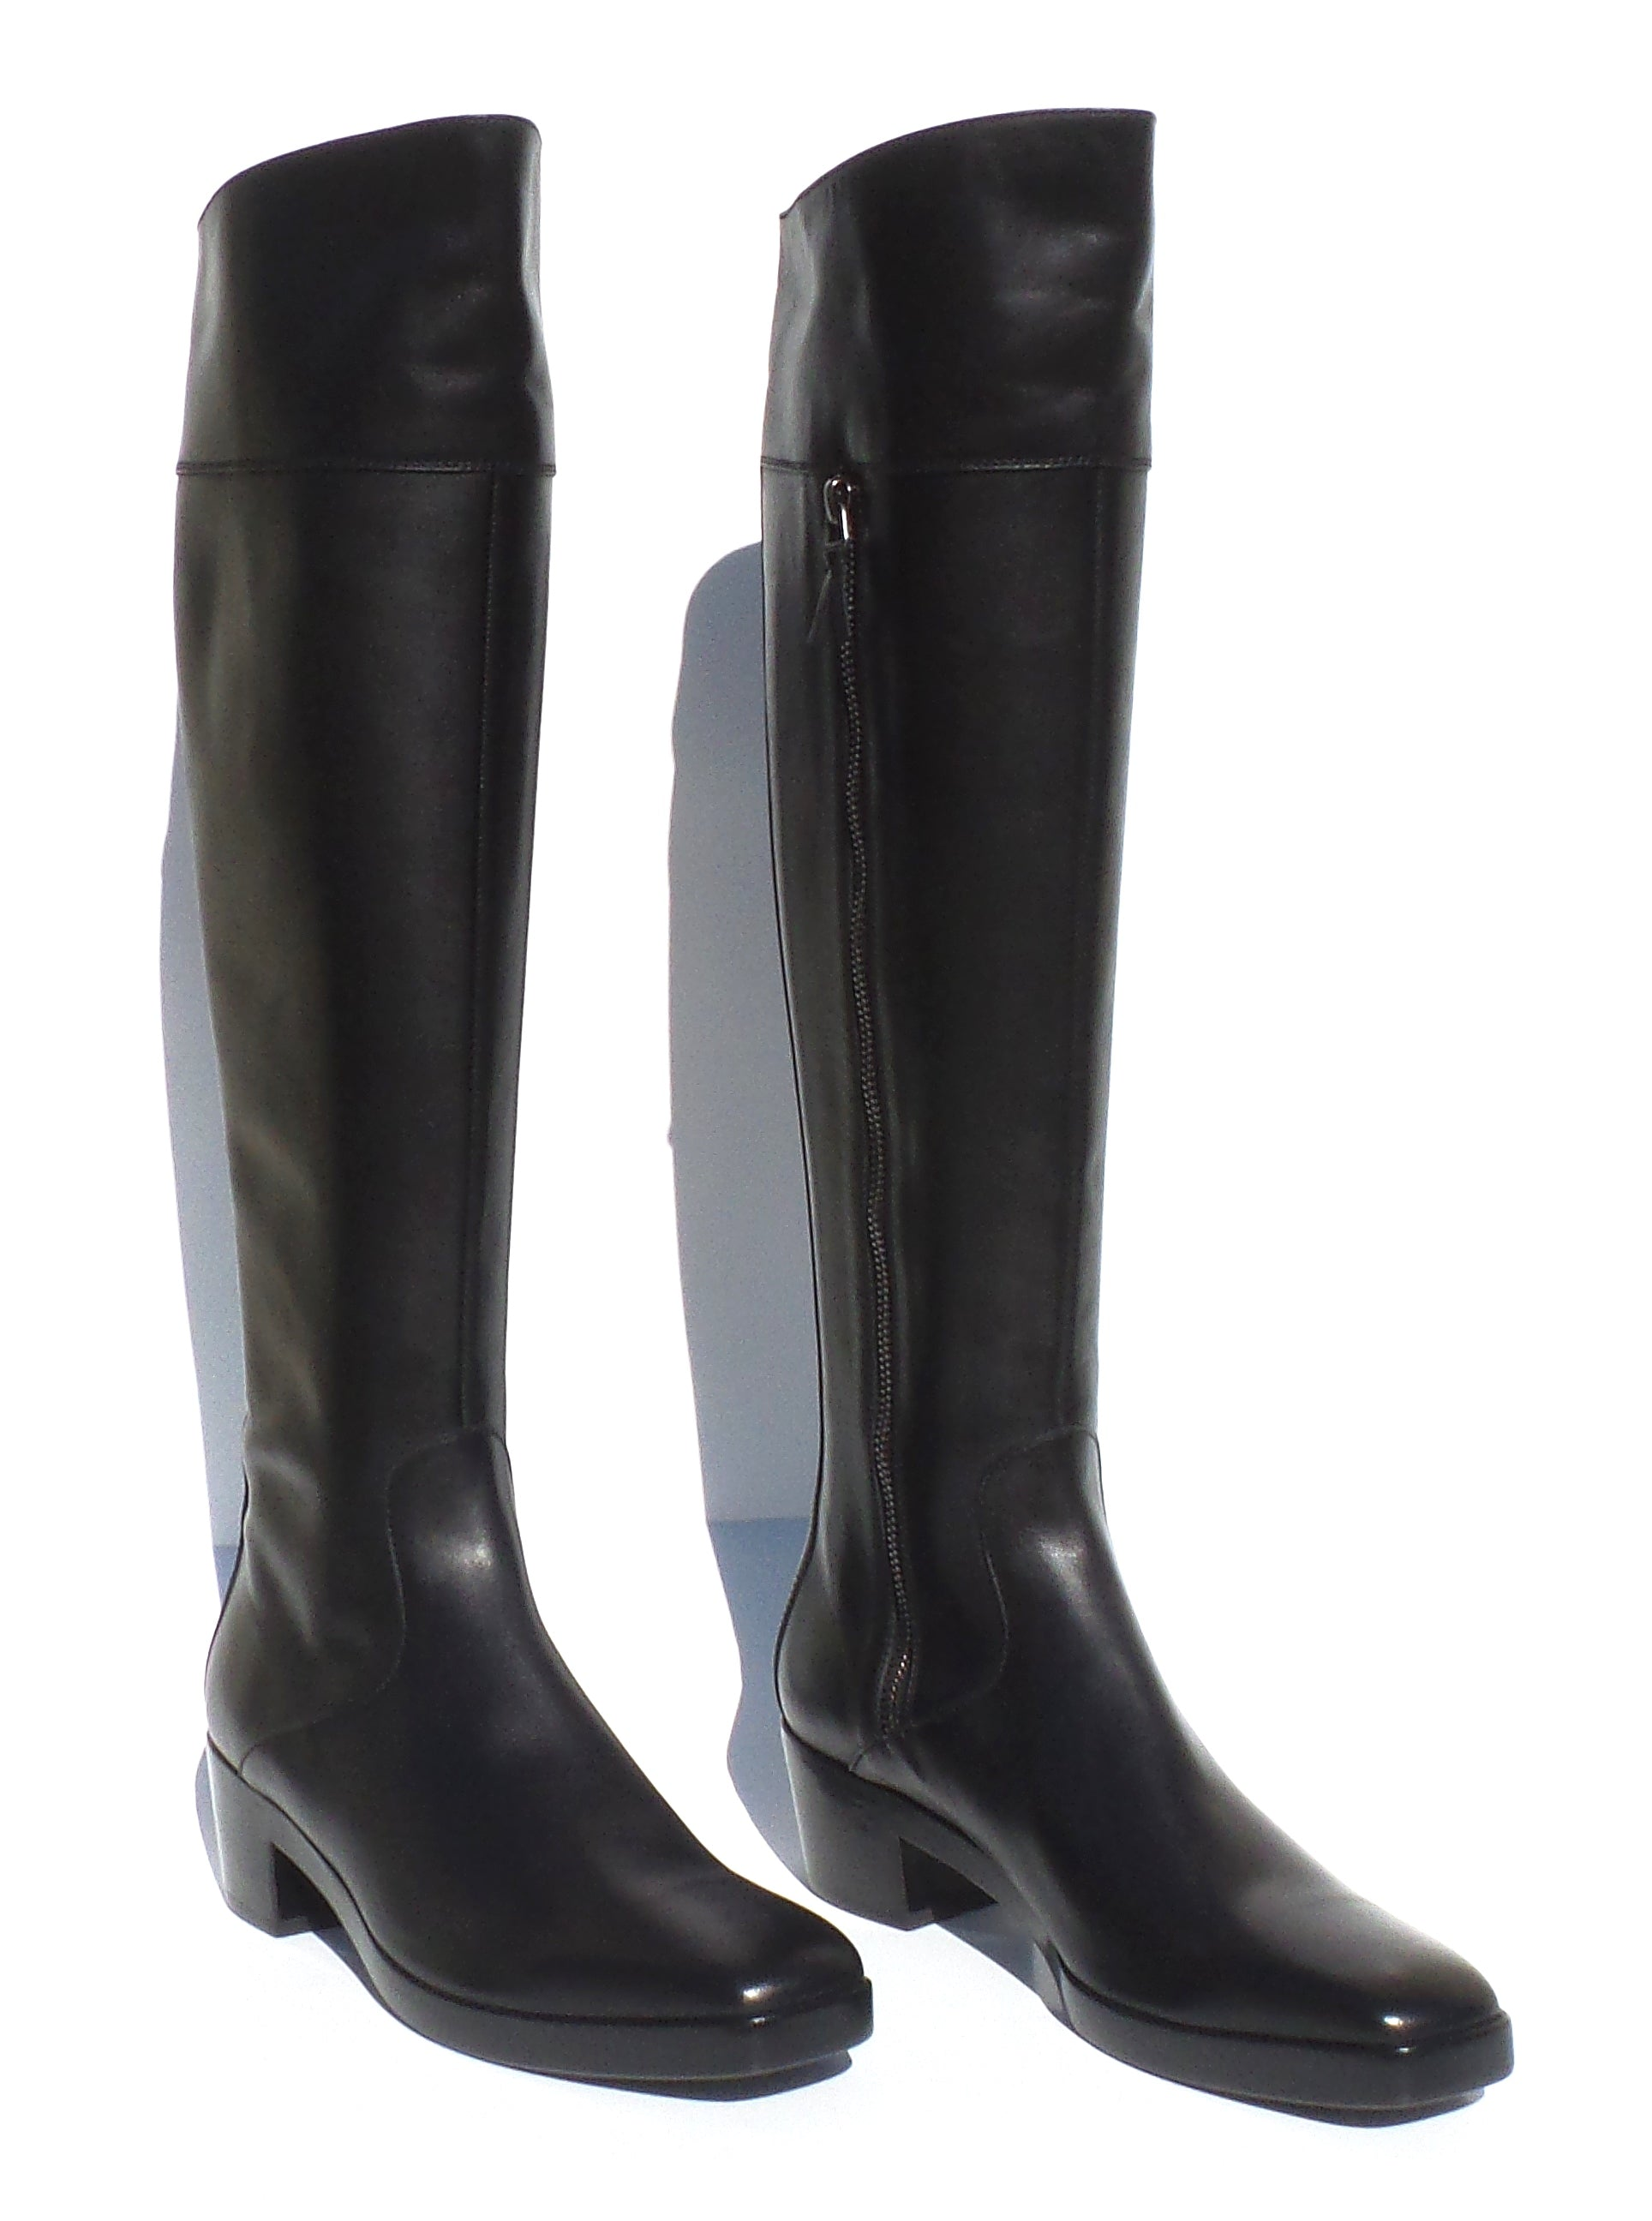 'Sold' BALENCIAGA Black Leather Square Toe Block Heel Inner Zip Motorcycle Boots 38 NWD